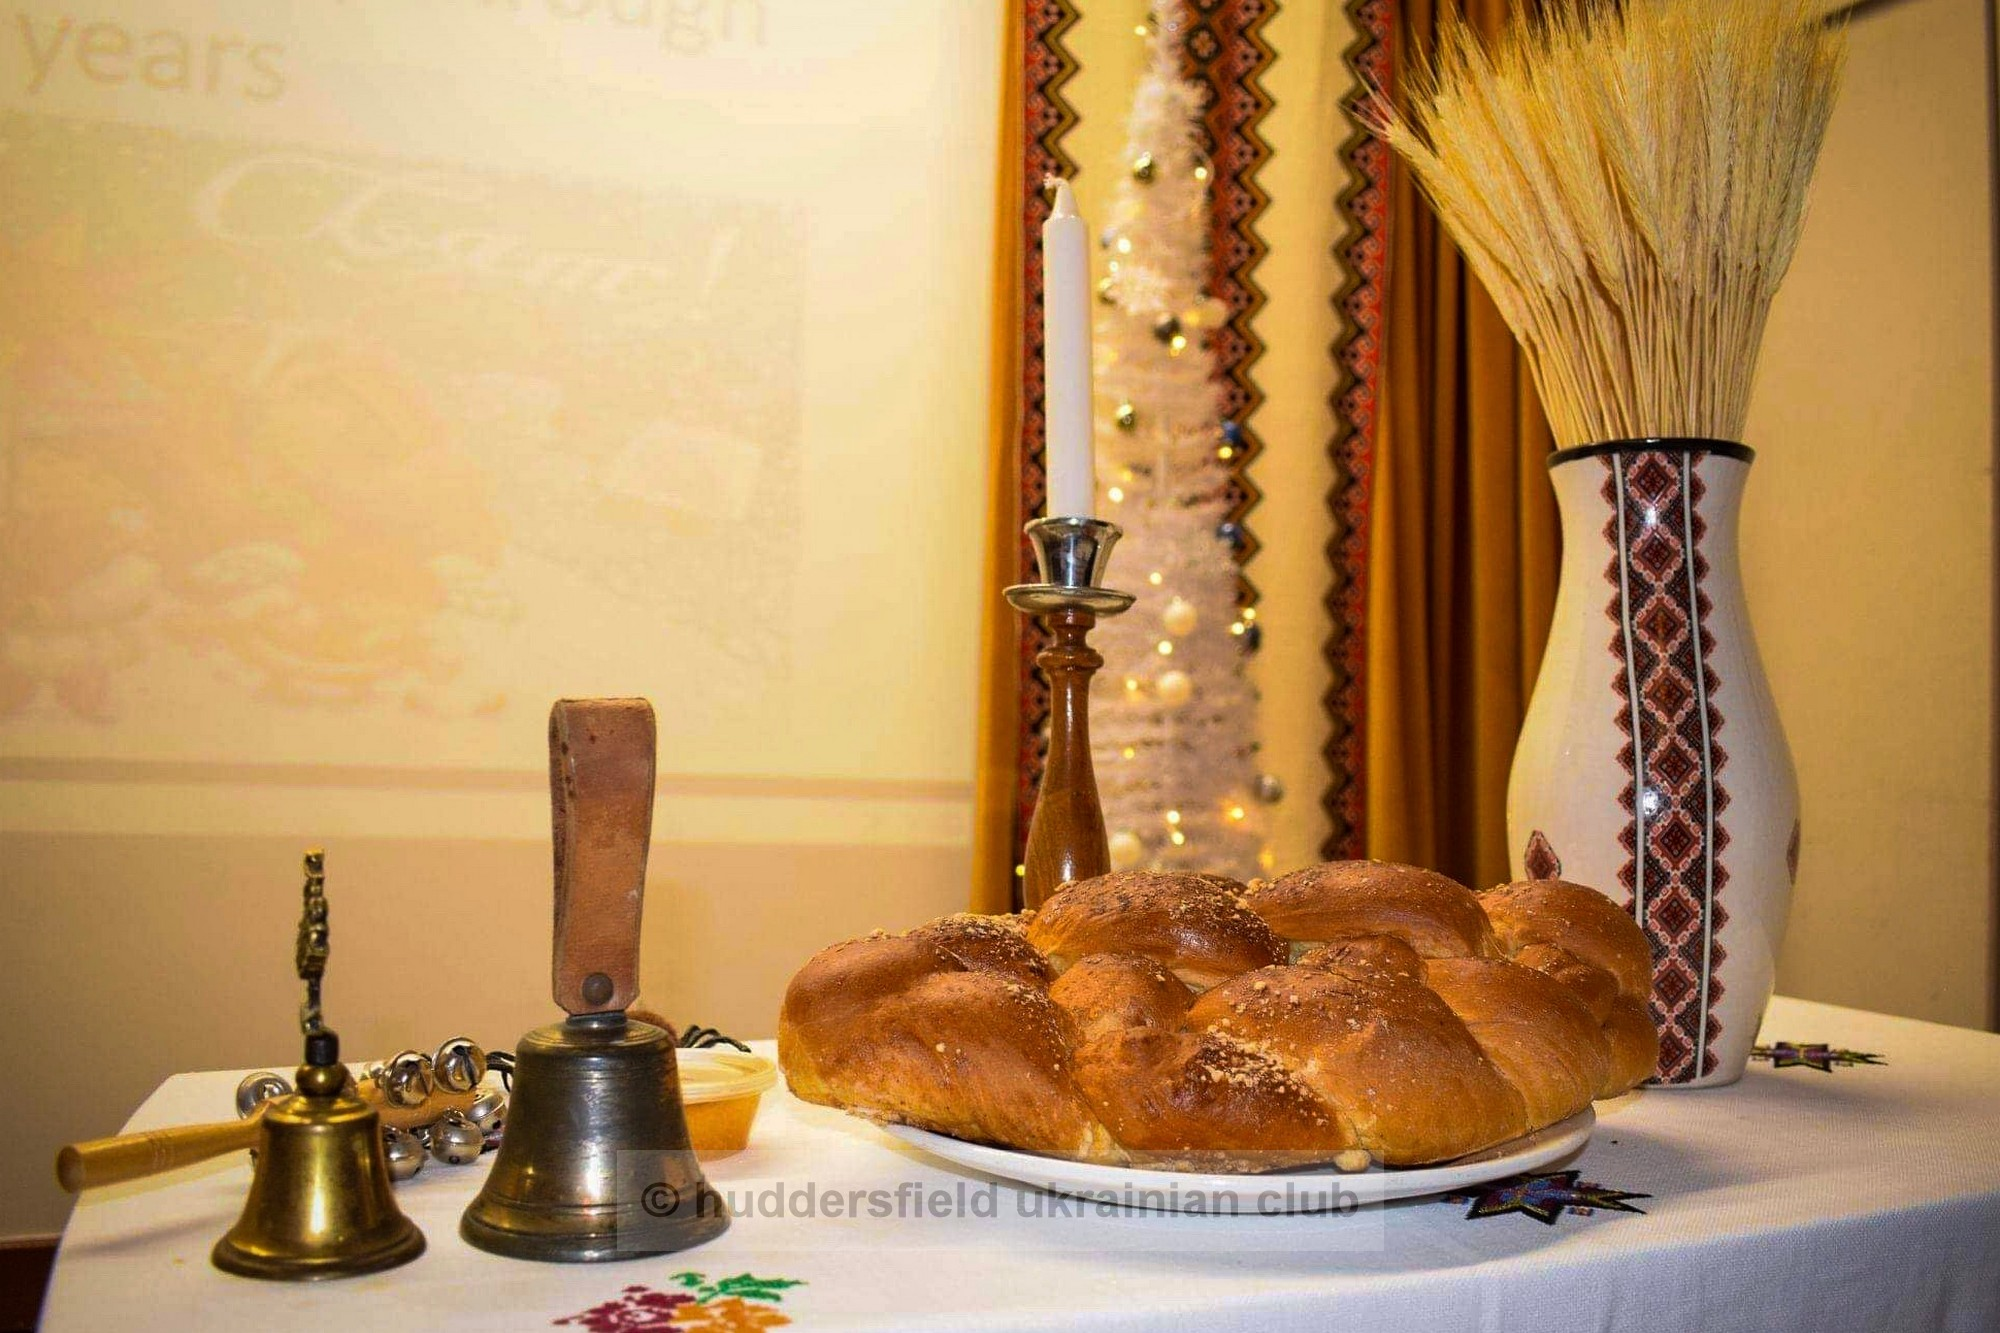 Sviat Vechir Meal - 04/01/20